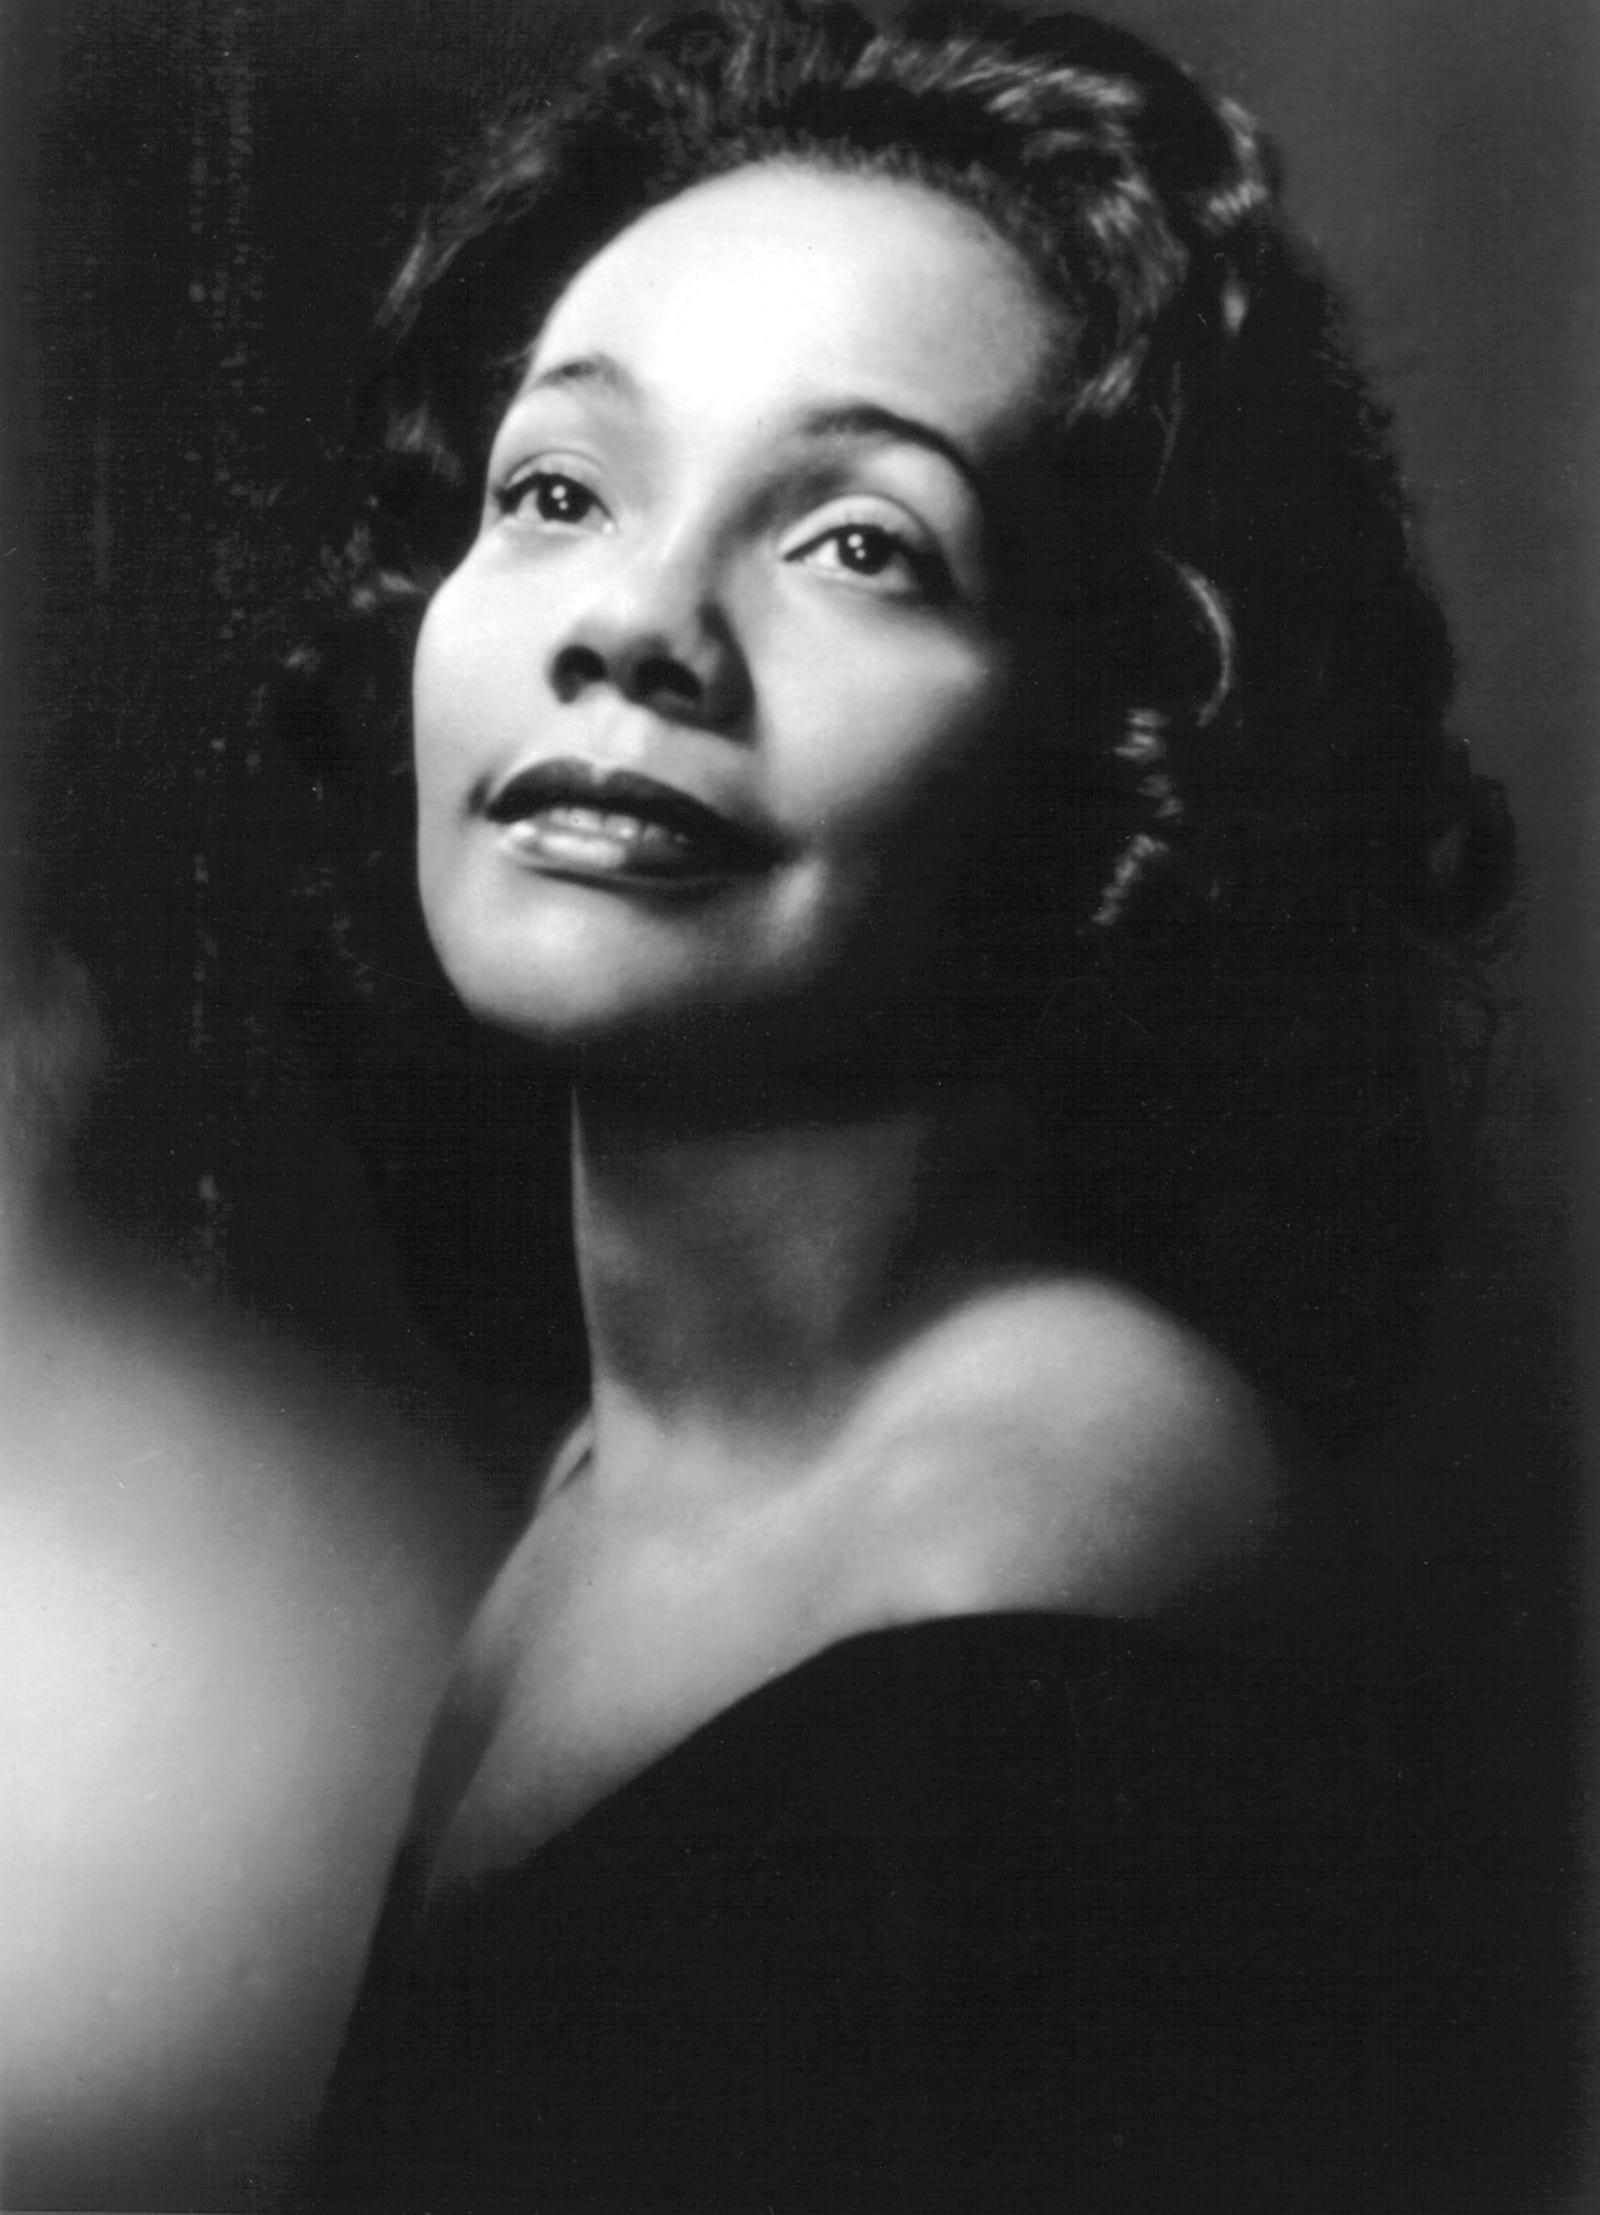 Coretta Scott King, date unknown, via the Schomburg Center (Photo12/UIG/Getty Images)